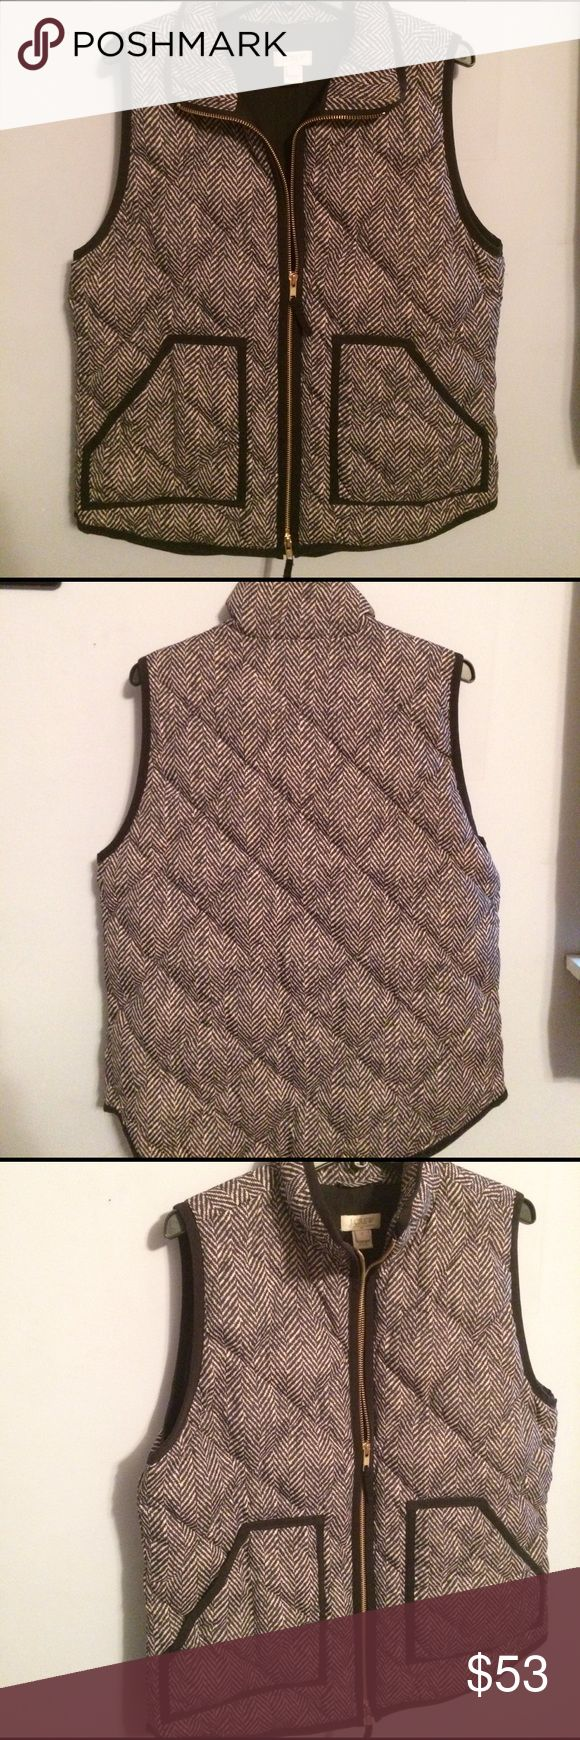 J Crew Small Vest Small Barely worn J. Crew vest. Black n white pattern with pockets! J. Crew Jackets & Coats Vests